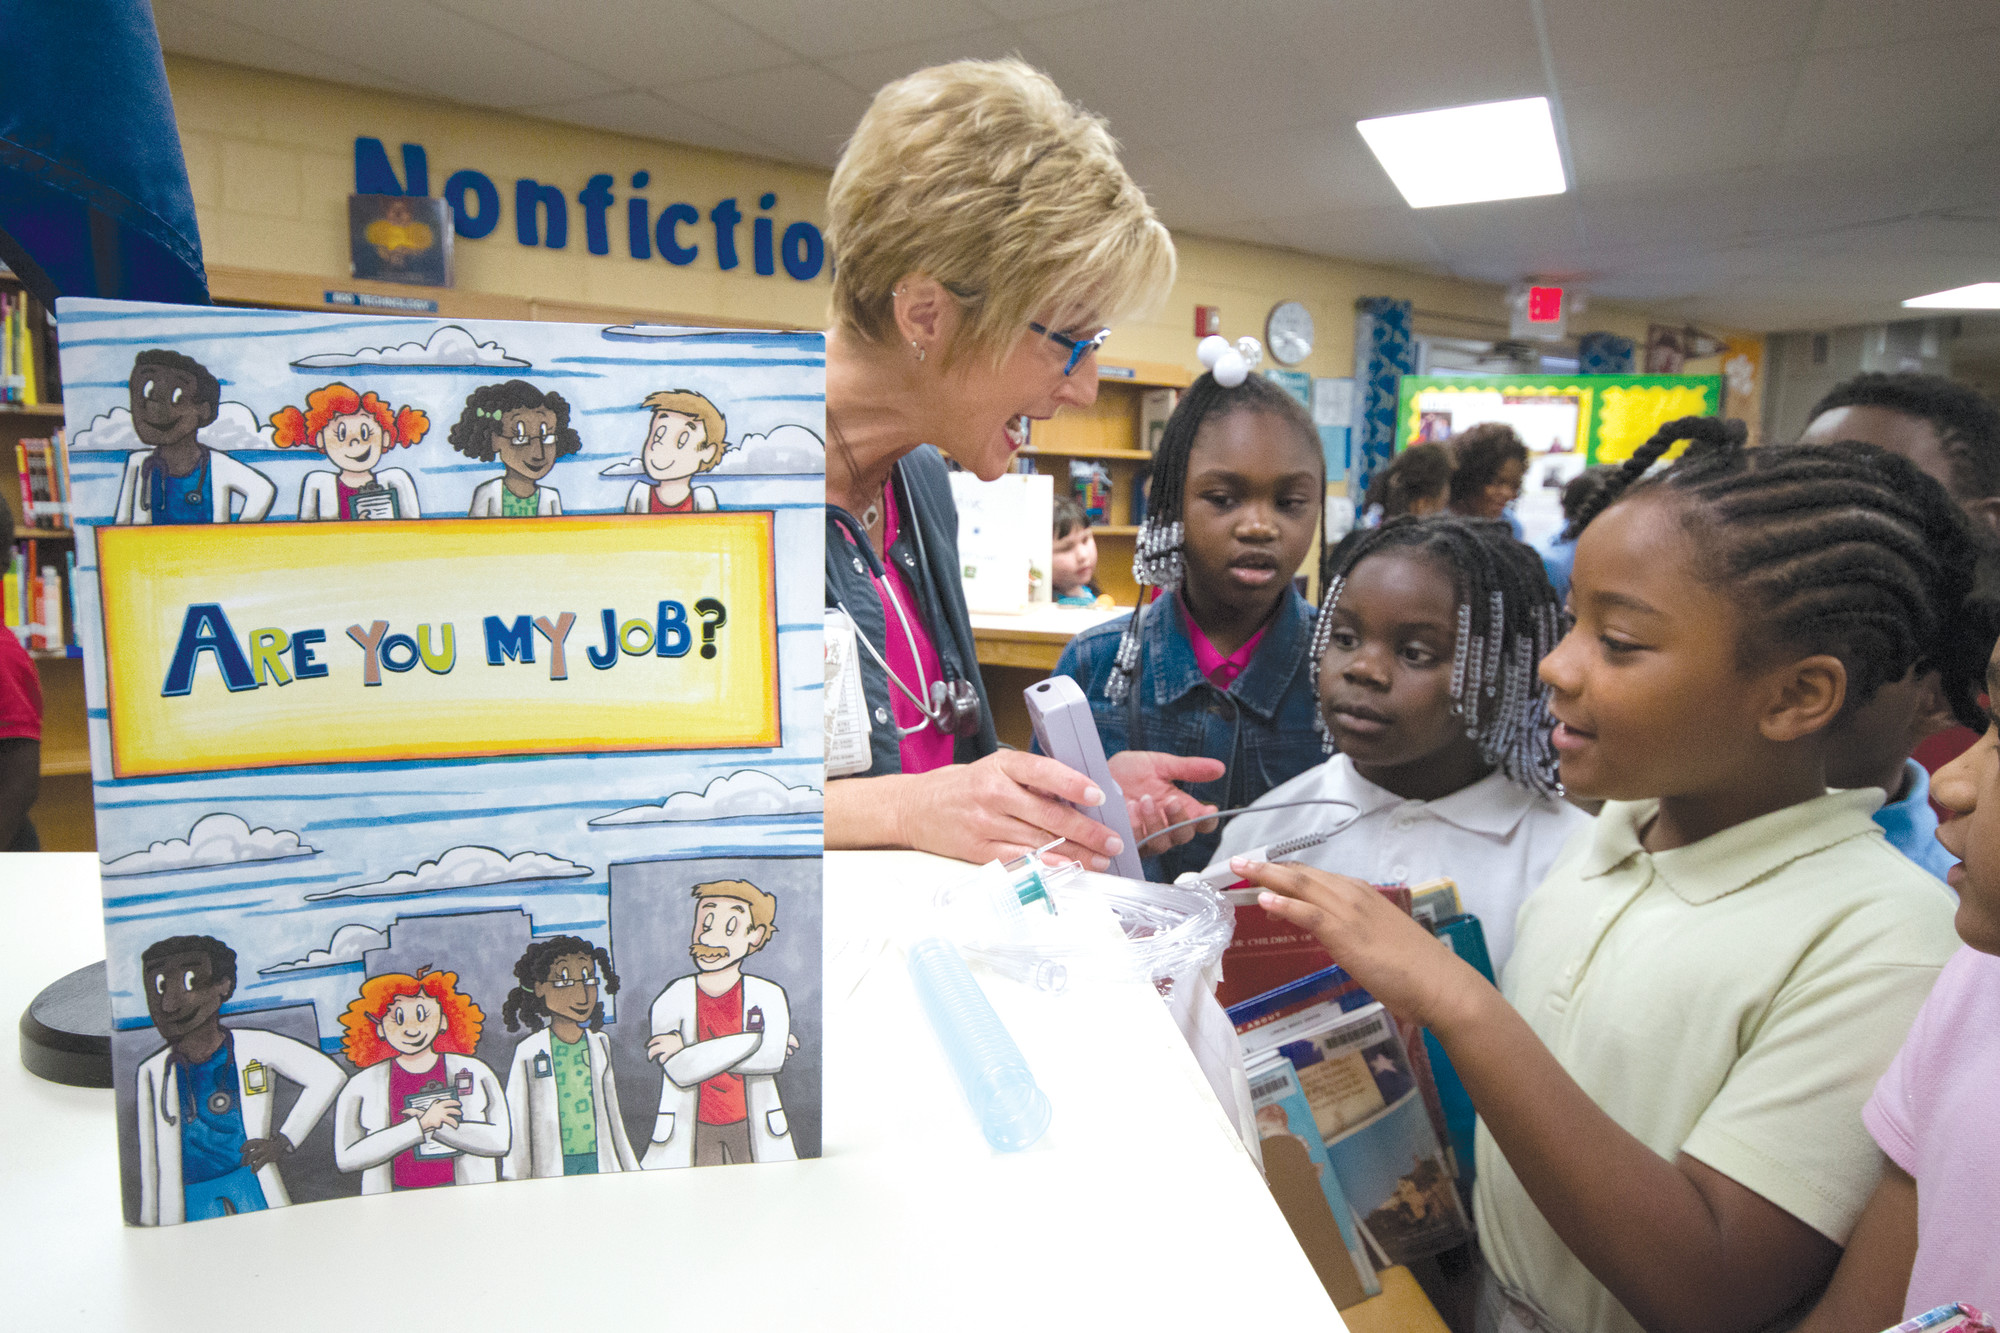 CHRIS MOORE / PALMETTO HEALTH TUOMEYSonya McDaniel, left, clinical respiratory care manager at Palmetto Health Tuomey, teaches second graders at Lemira Elementary School on Thursday about her job. The hospital unveiled the book, Are You My Job?, detailing hospital careers at the school.